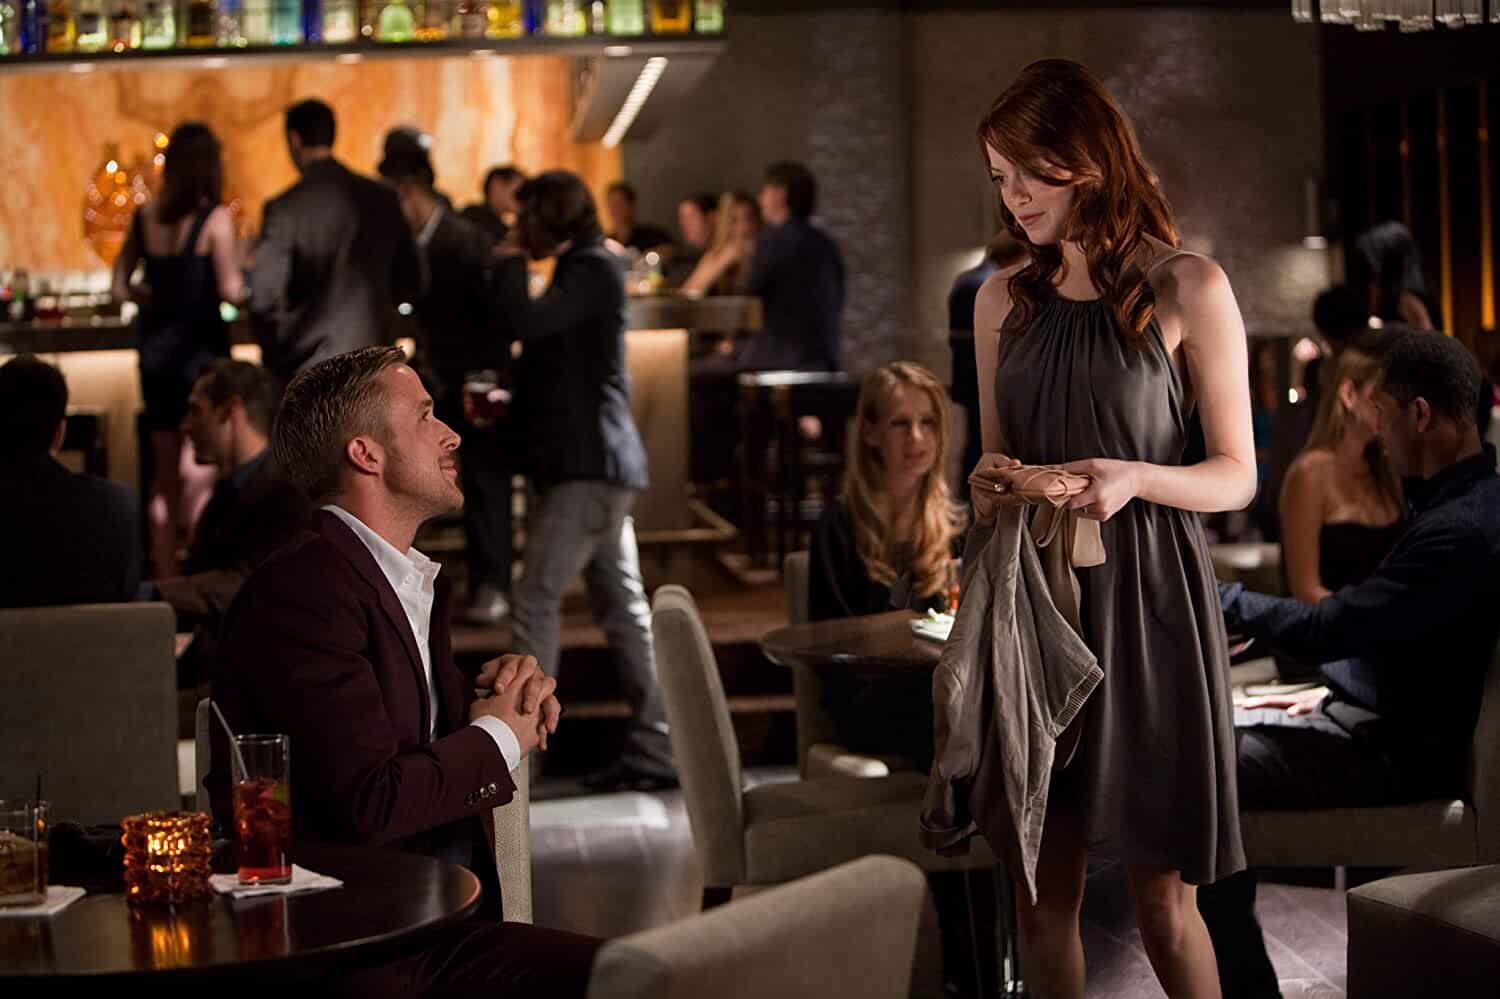 Ryan Gosling and Emma Stone in Crazy, Stupid, Love. (2011)